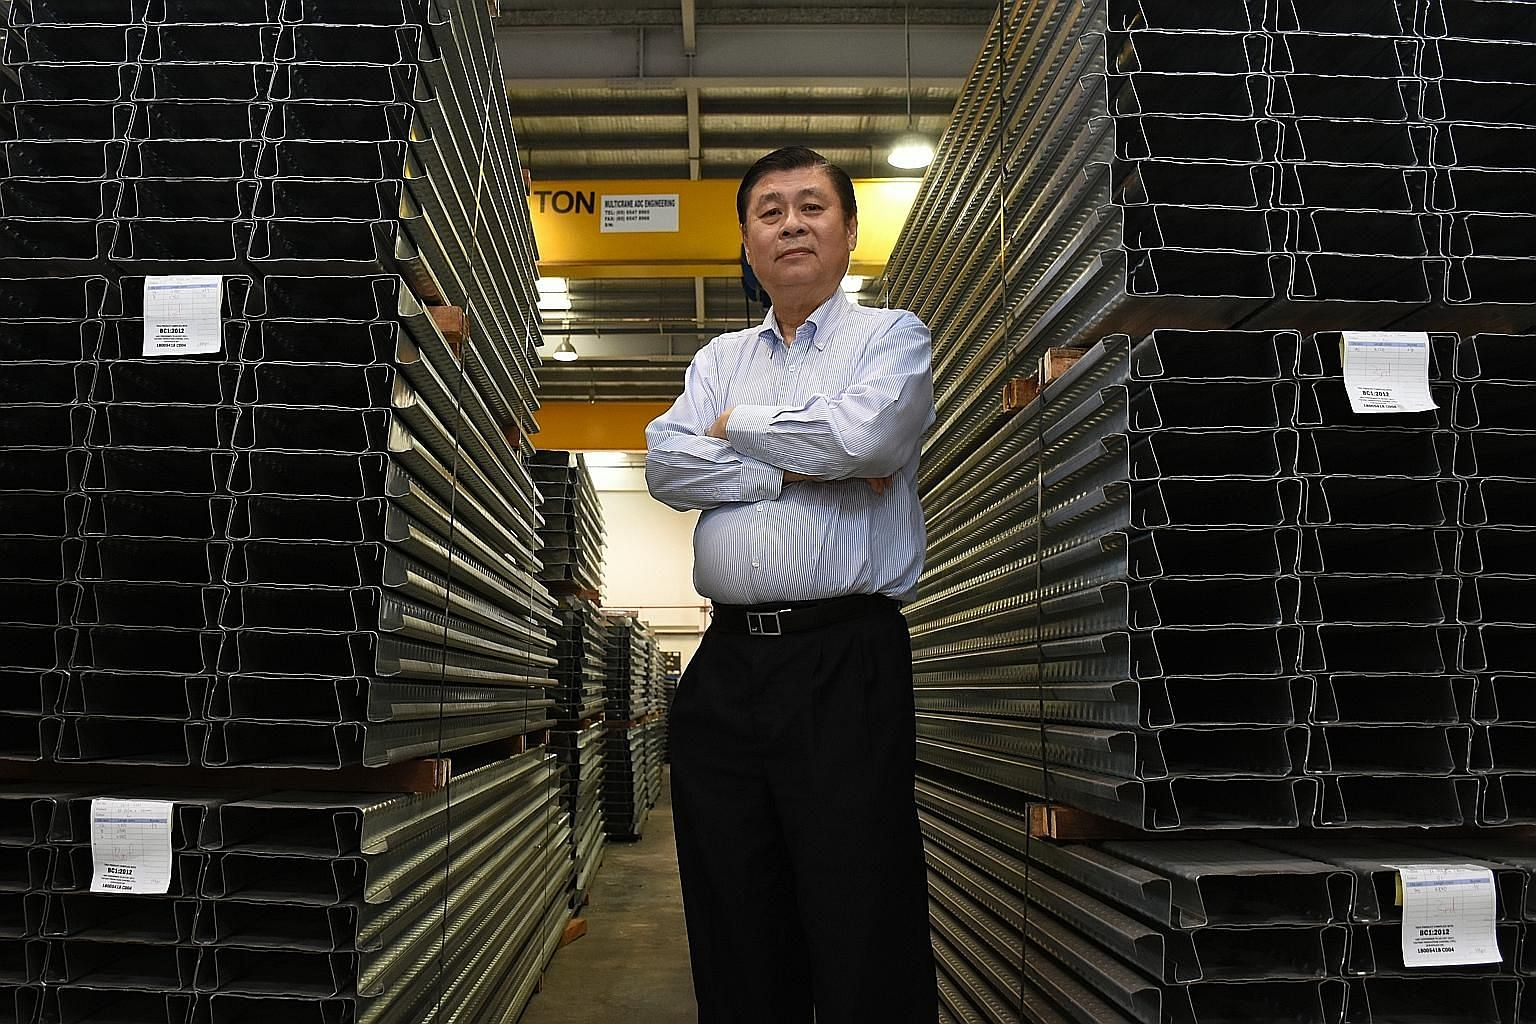 M Metal chief executive officer John Kong, whose company gets raw materials from a Taiwanese firm, fears the trade war will worsen and expand beyond the US and China should Beijing decide to impose tariffs on Taiwan as well. While the 10-year-old con